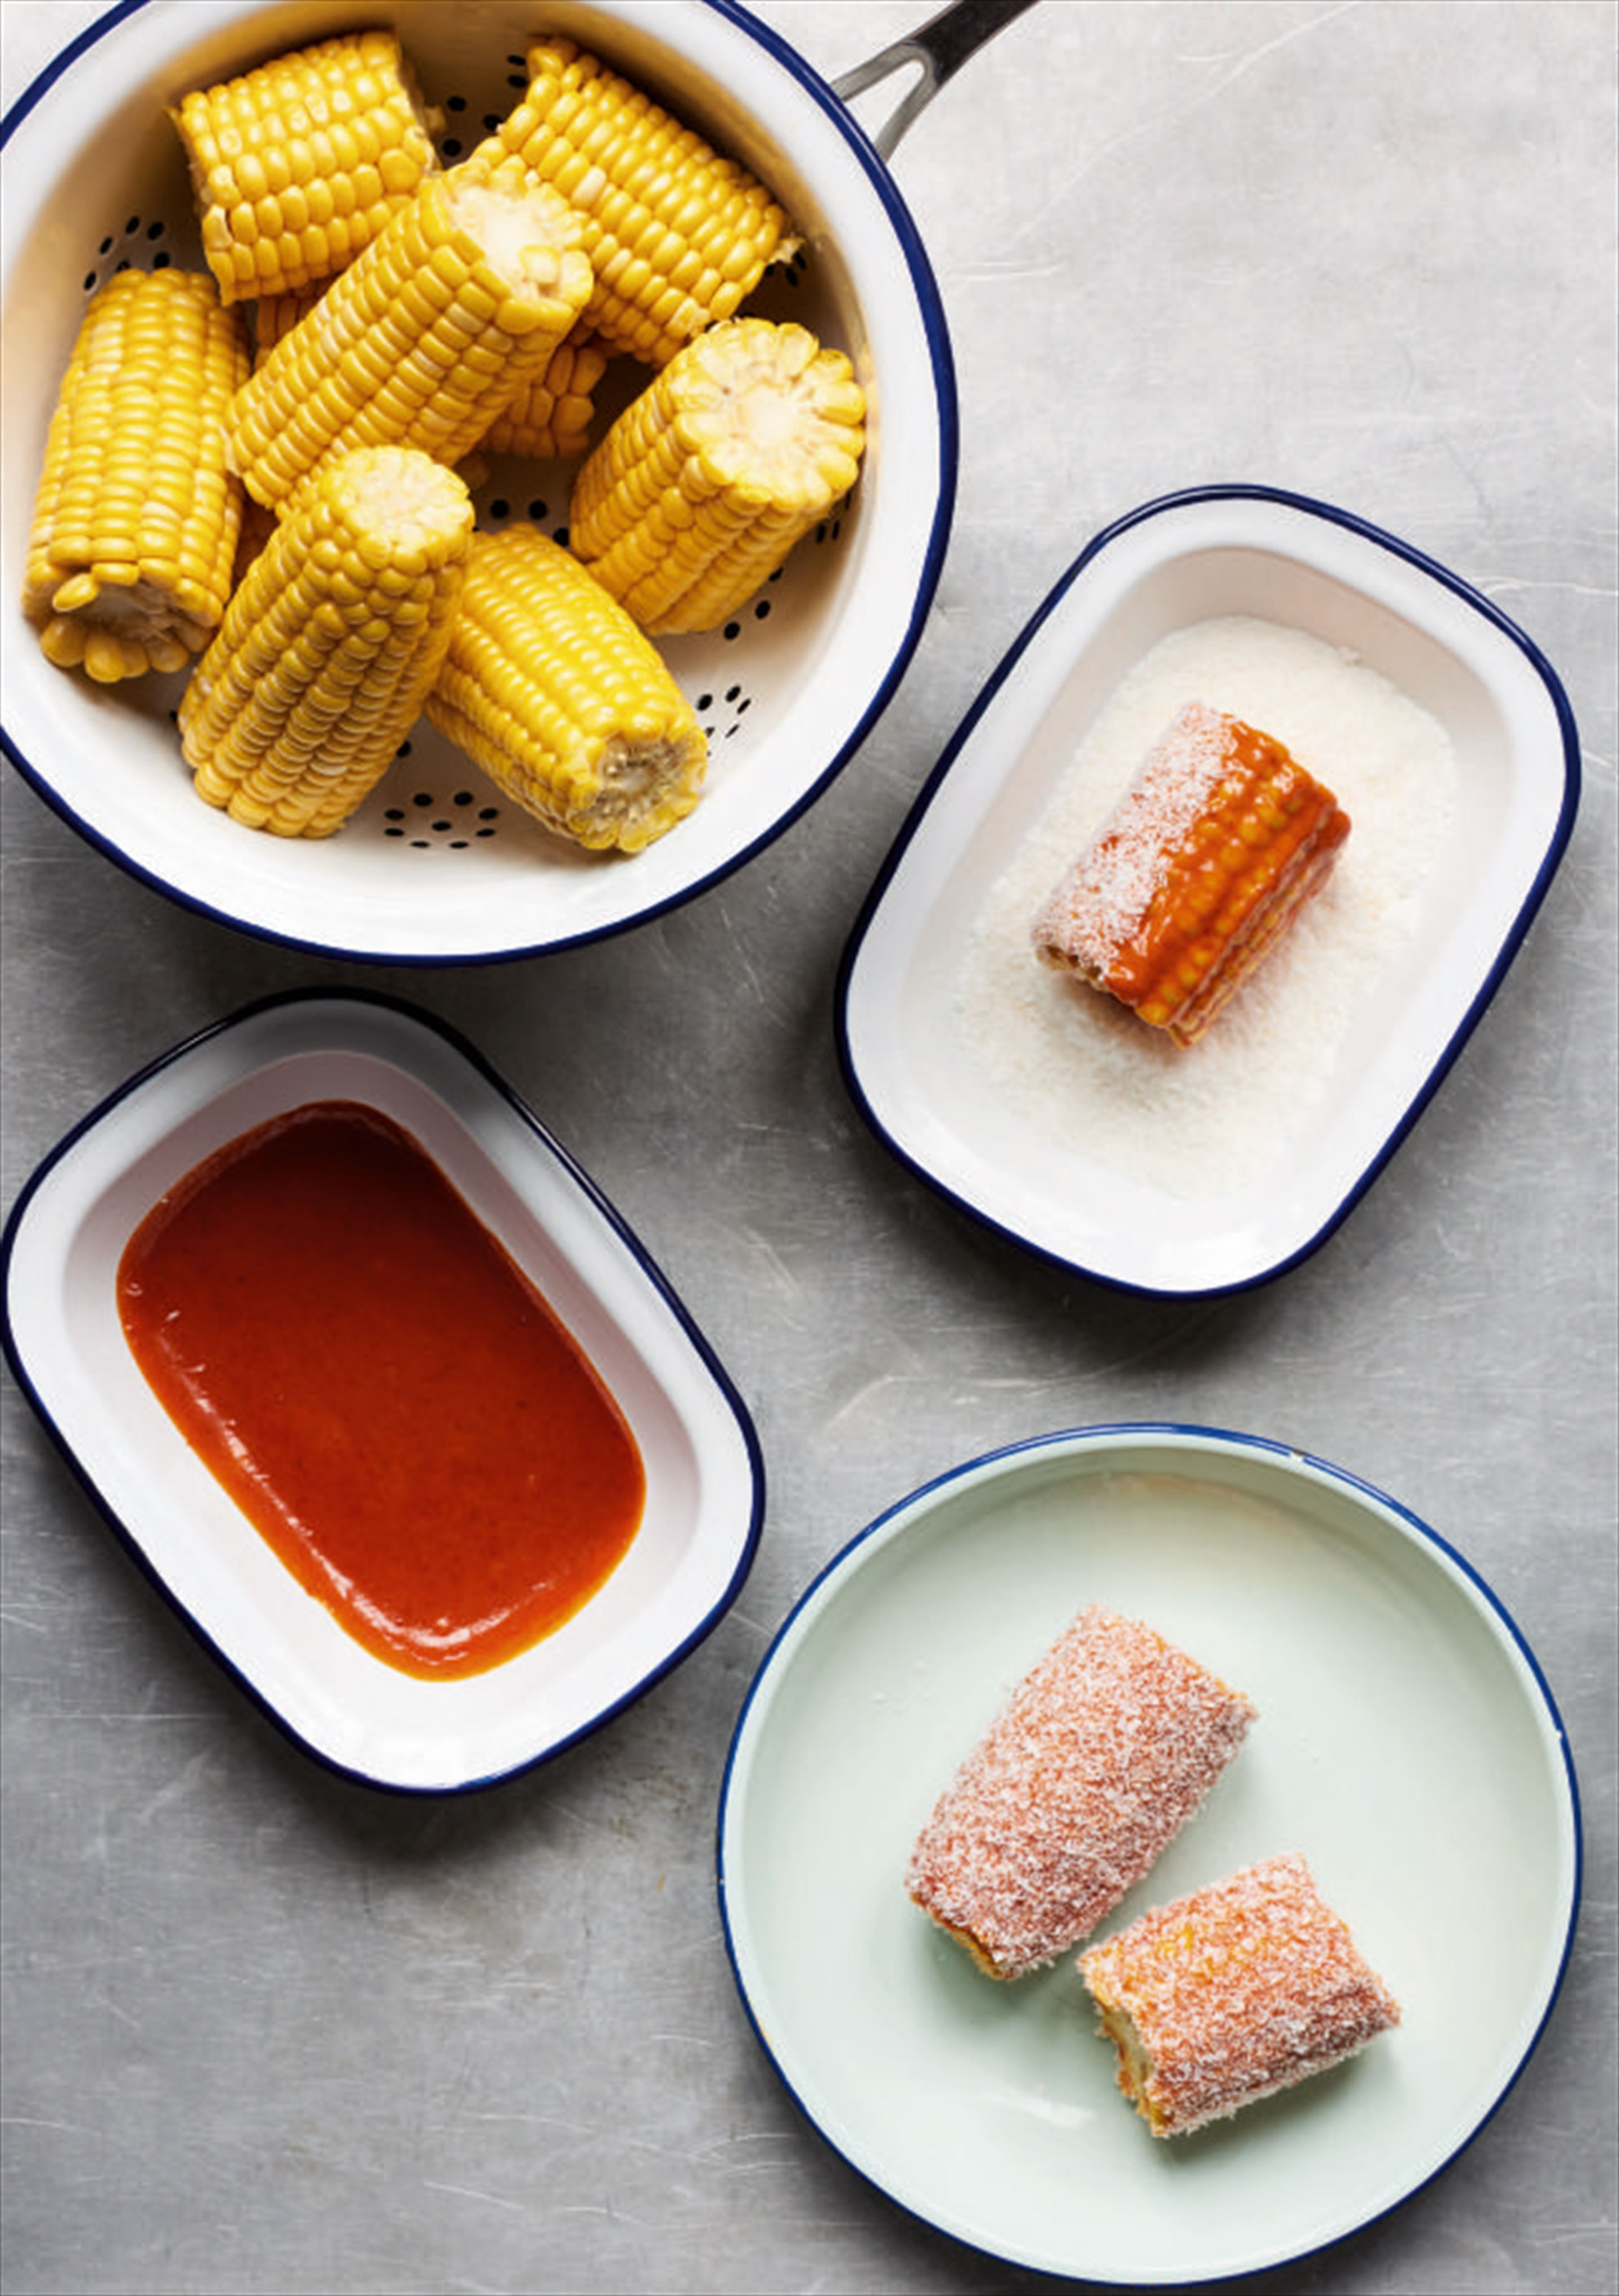 Gochujang mayo and coconut corn on the cob